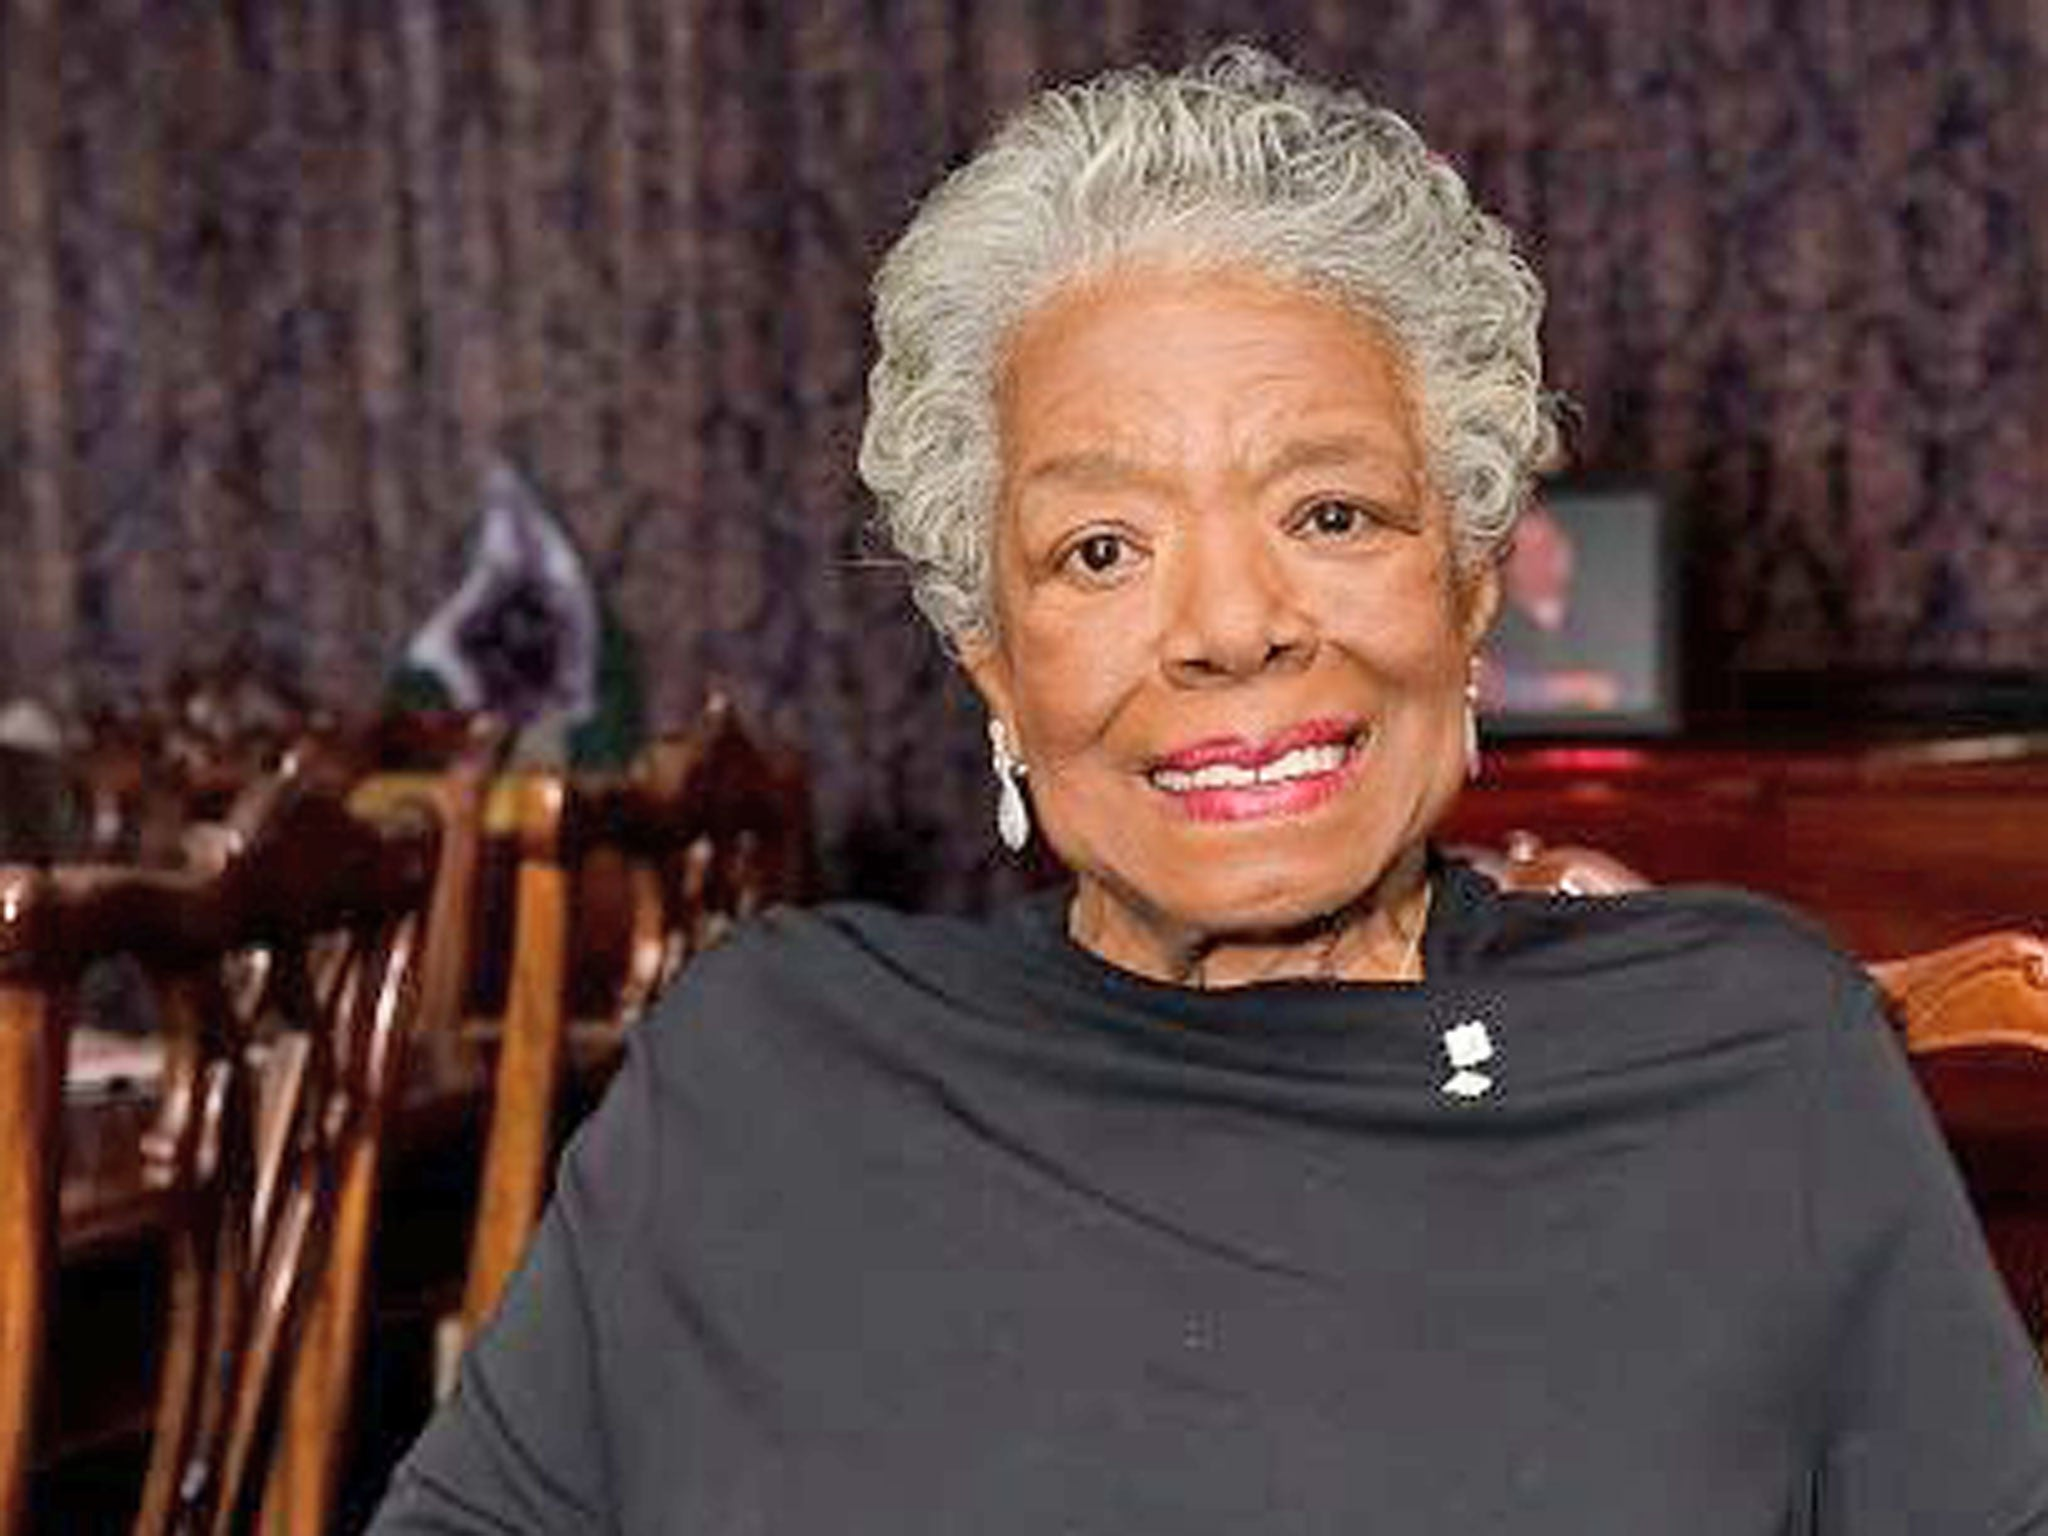 critic reviews of maya angelou Review: even if you know something of angelou, directors bob hercules and rita coburn whack are bound to surprise you with a choice detail or two.